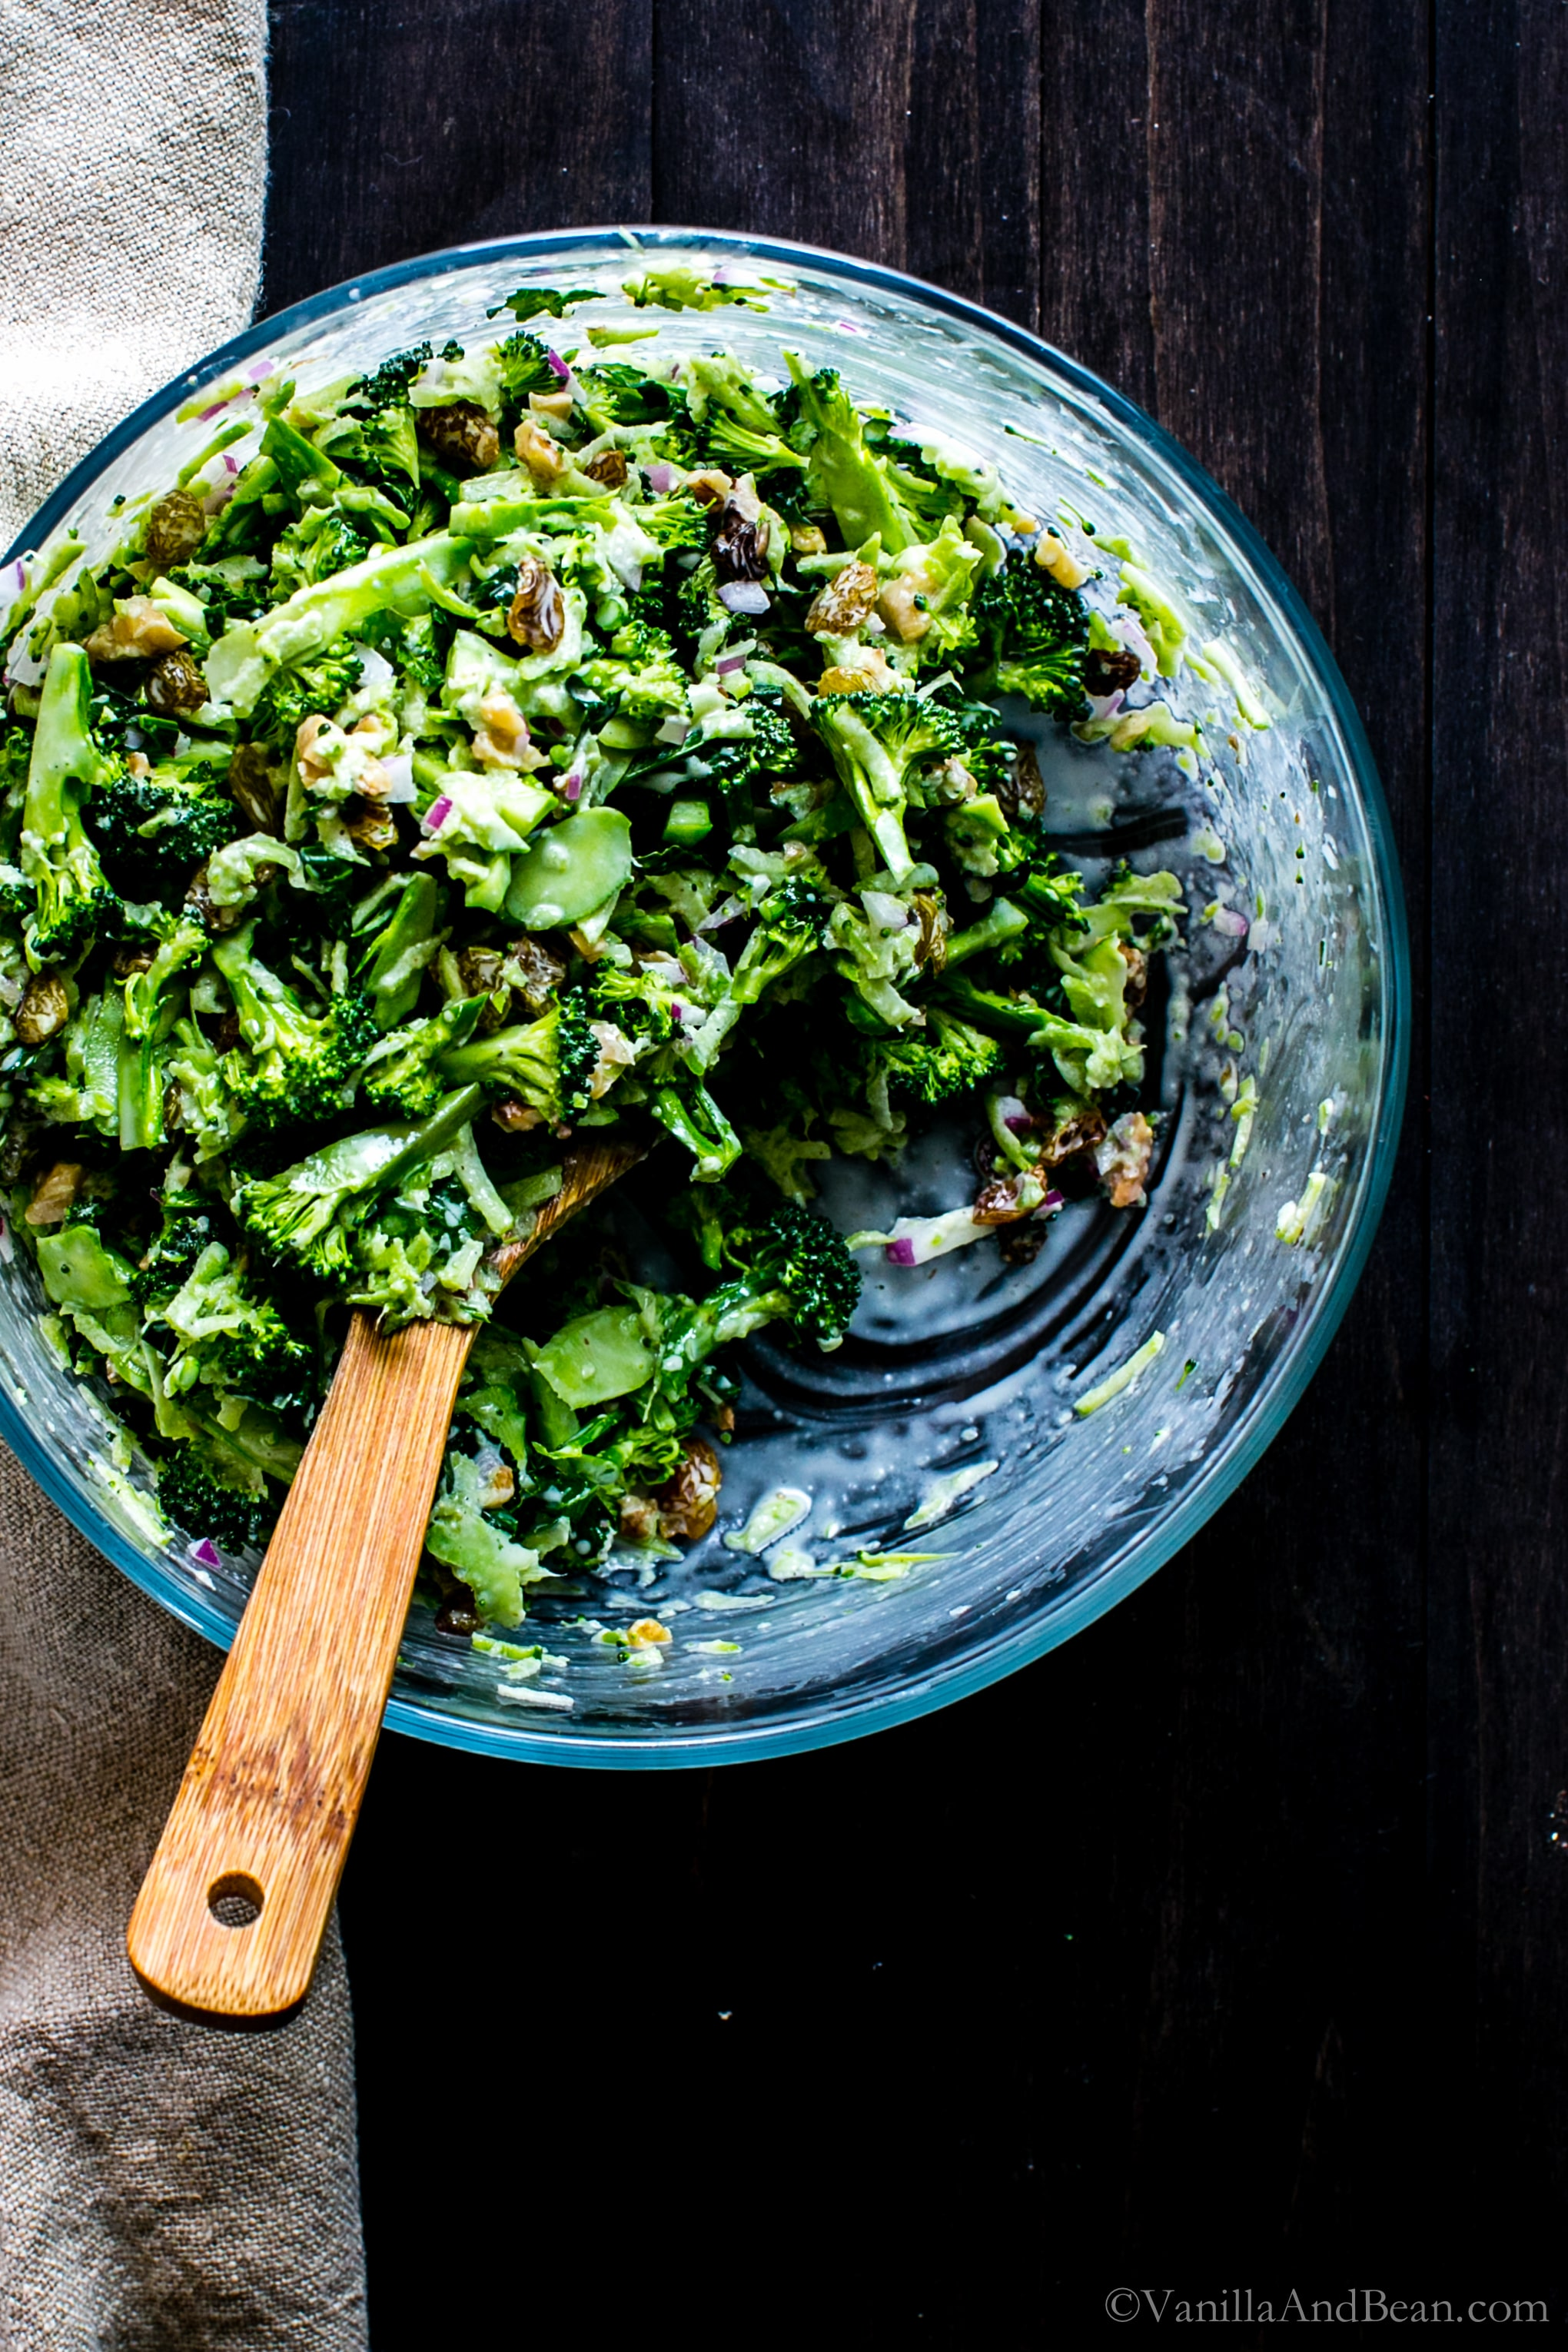 Use the entire broccoli to make this addicting Broccoli Slaw with Golden Raisins and Walnuts. Easy to whip up and have on the ready for lunch, sides or picnics! vegan or vegetarian + gluten free